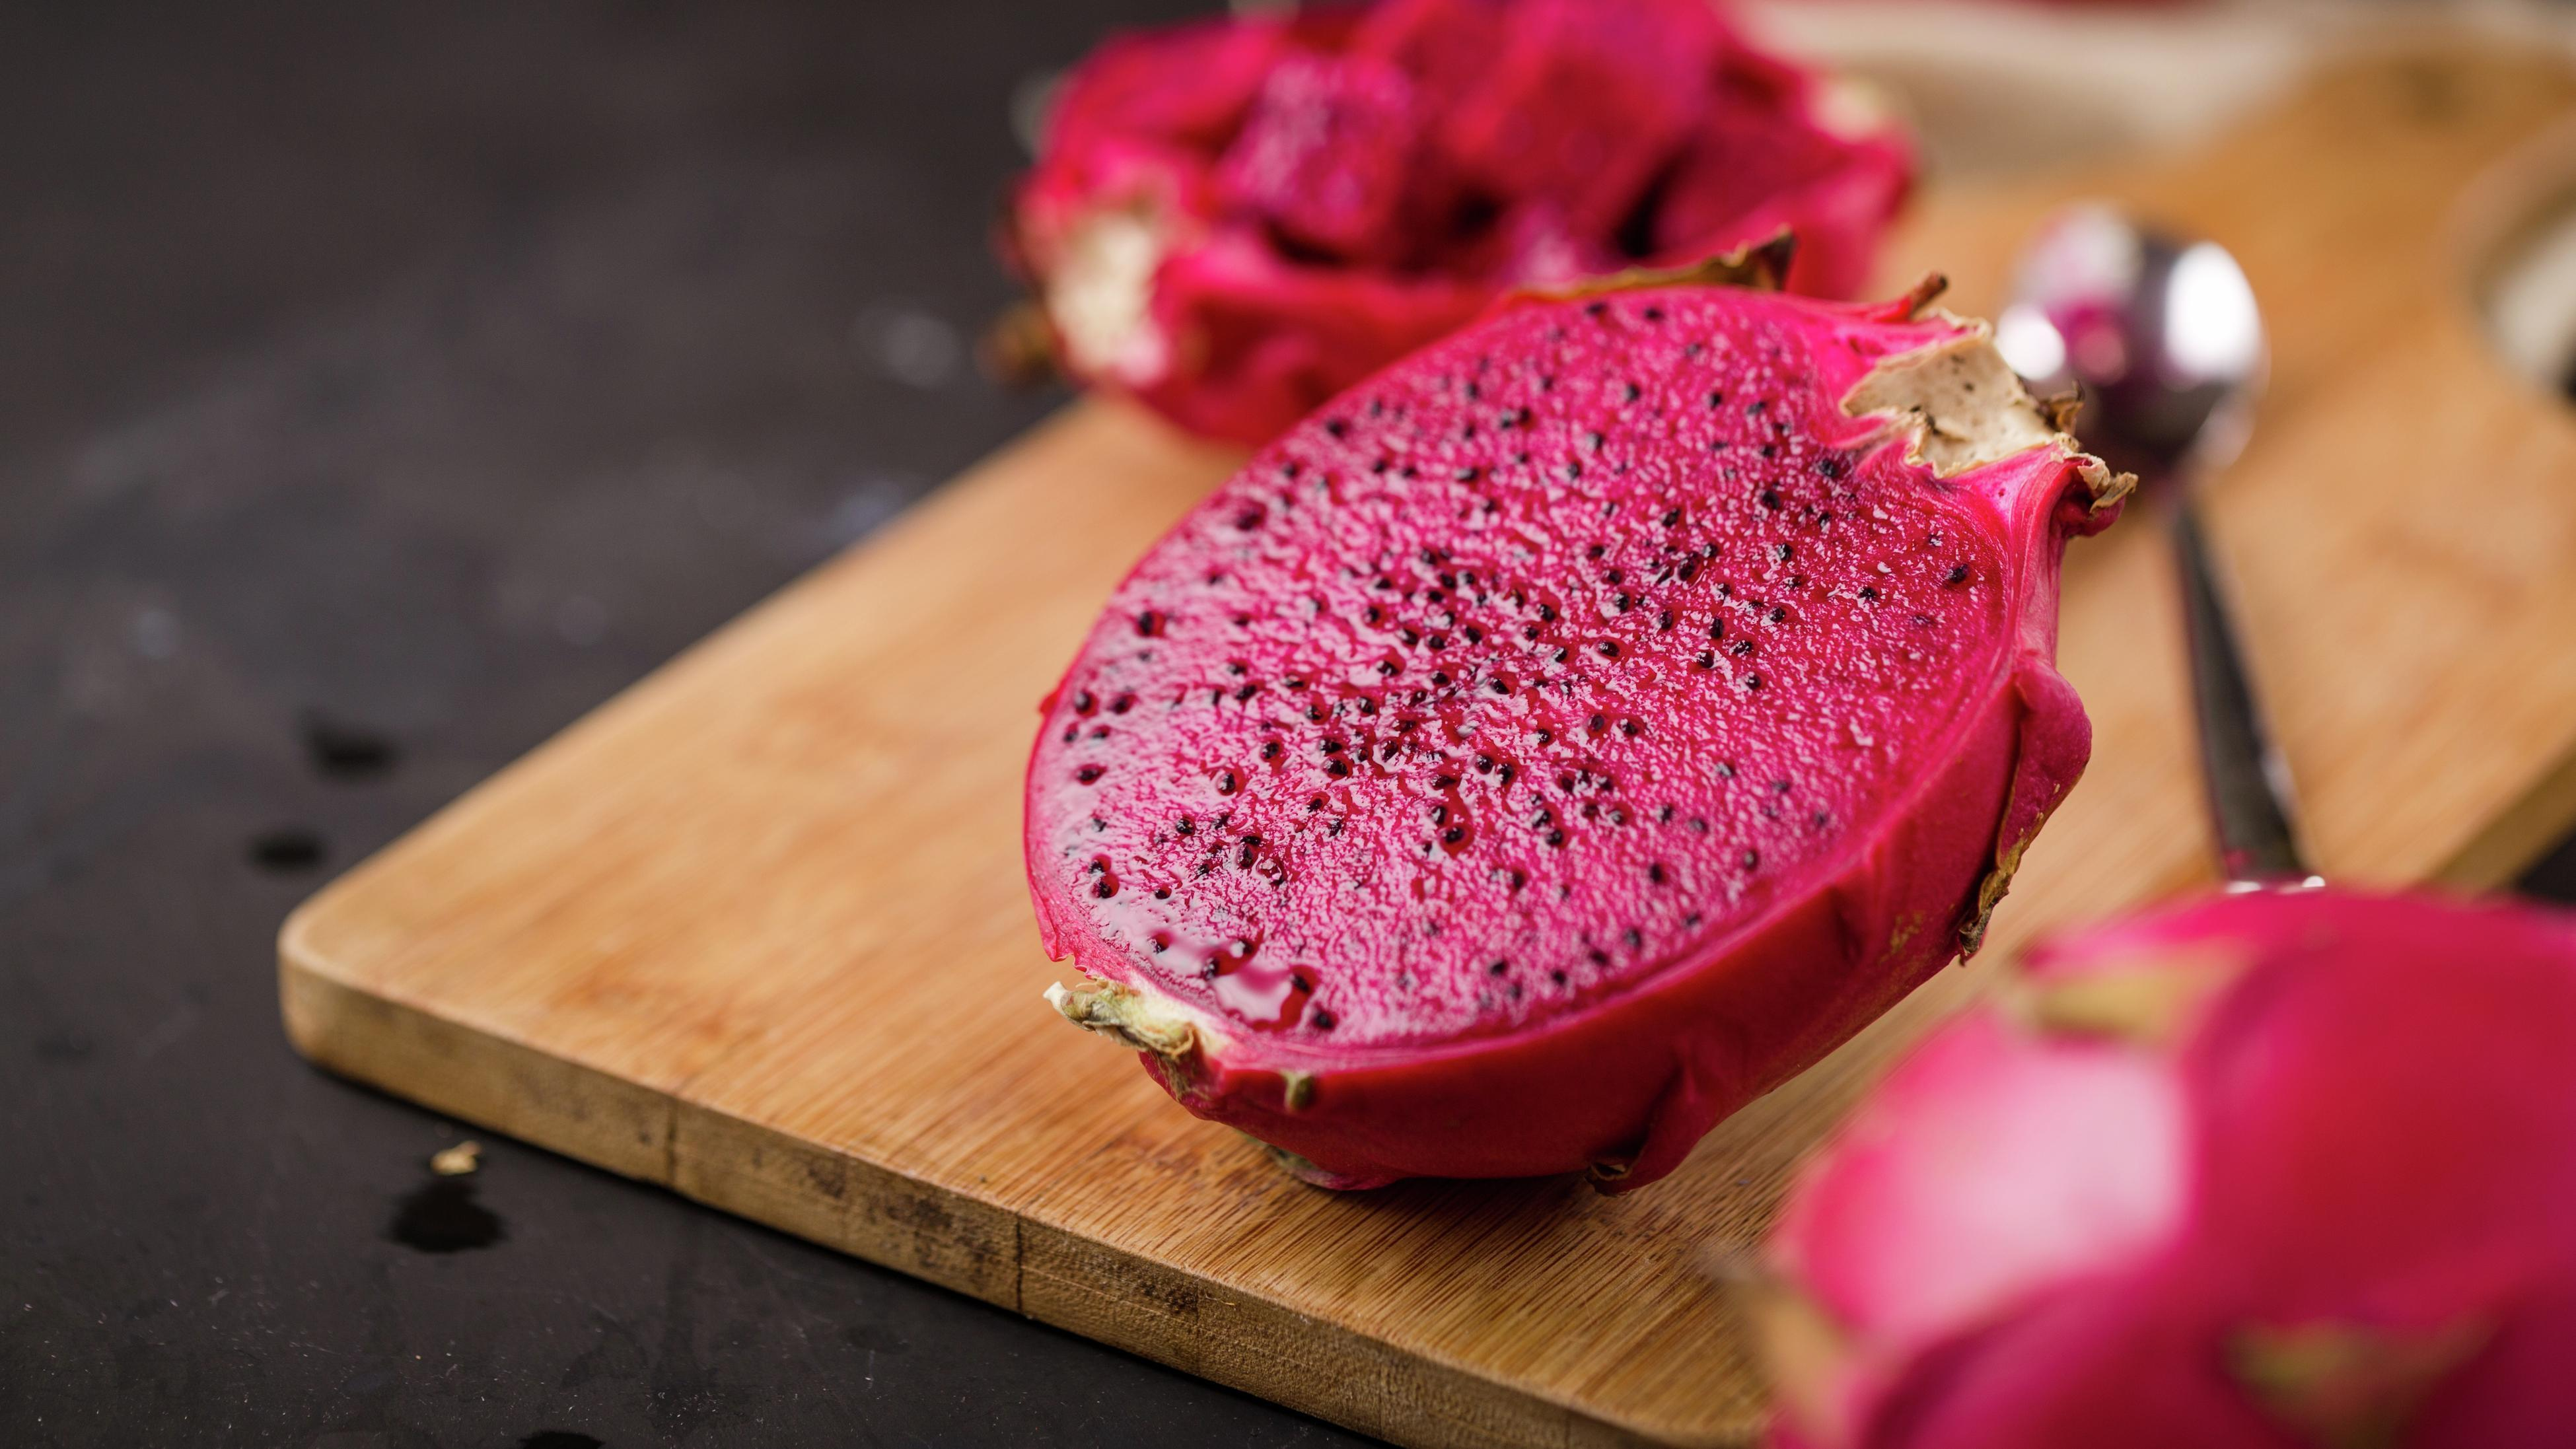 close up of a dragon fruit sliced in half on a wooden board